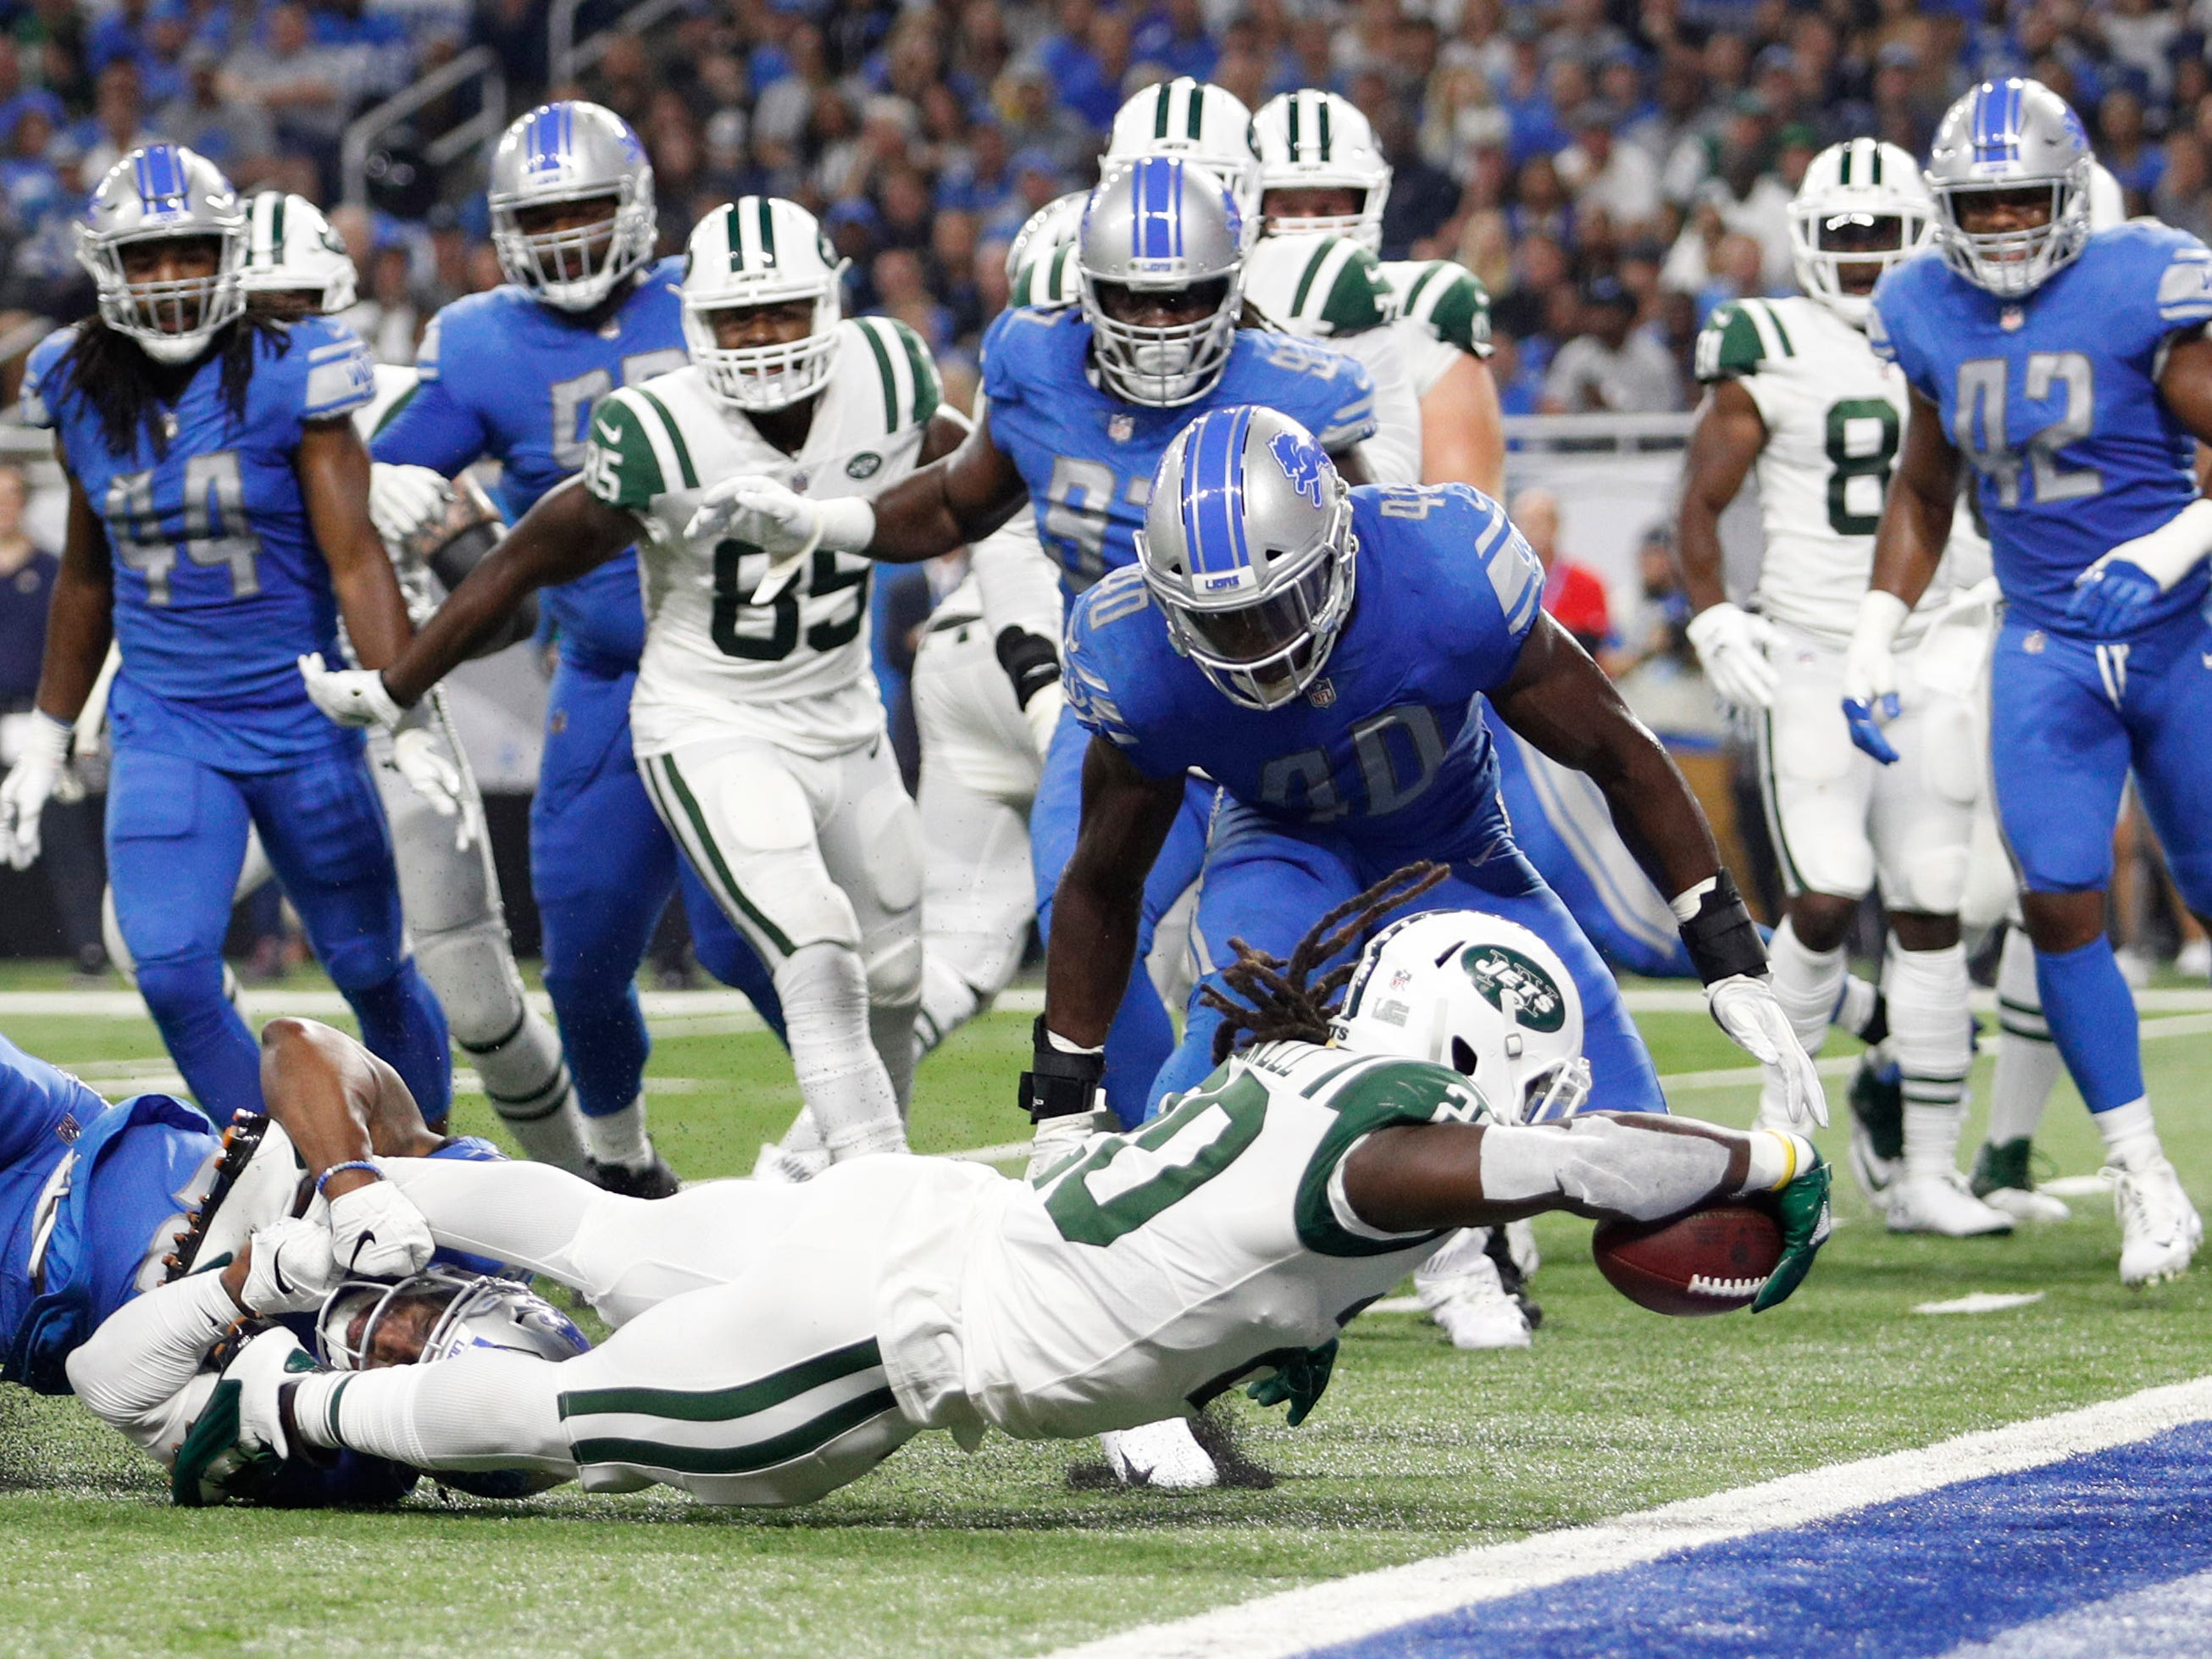 New York Jets running back Isaiah Crowell reaches over the goal line for a touchdown during the first quarter against the Detroit Lions at Ford Field.